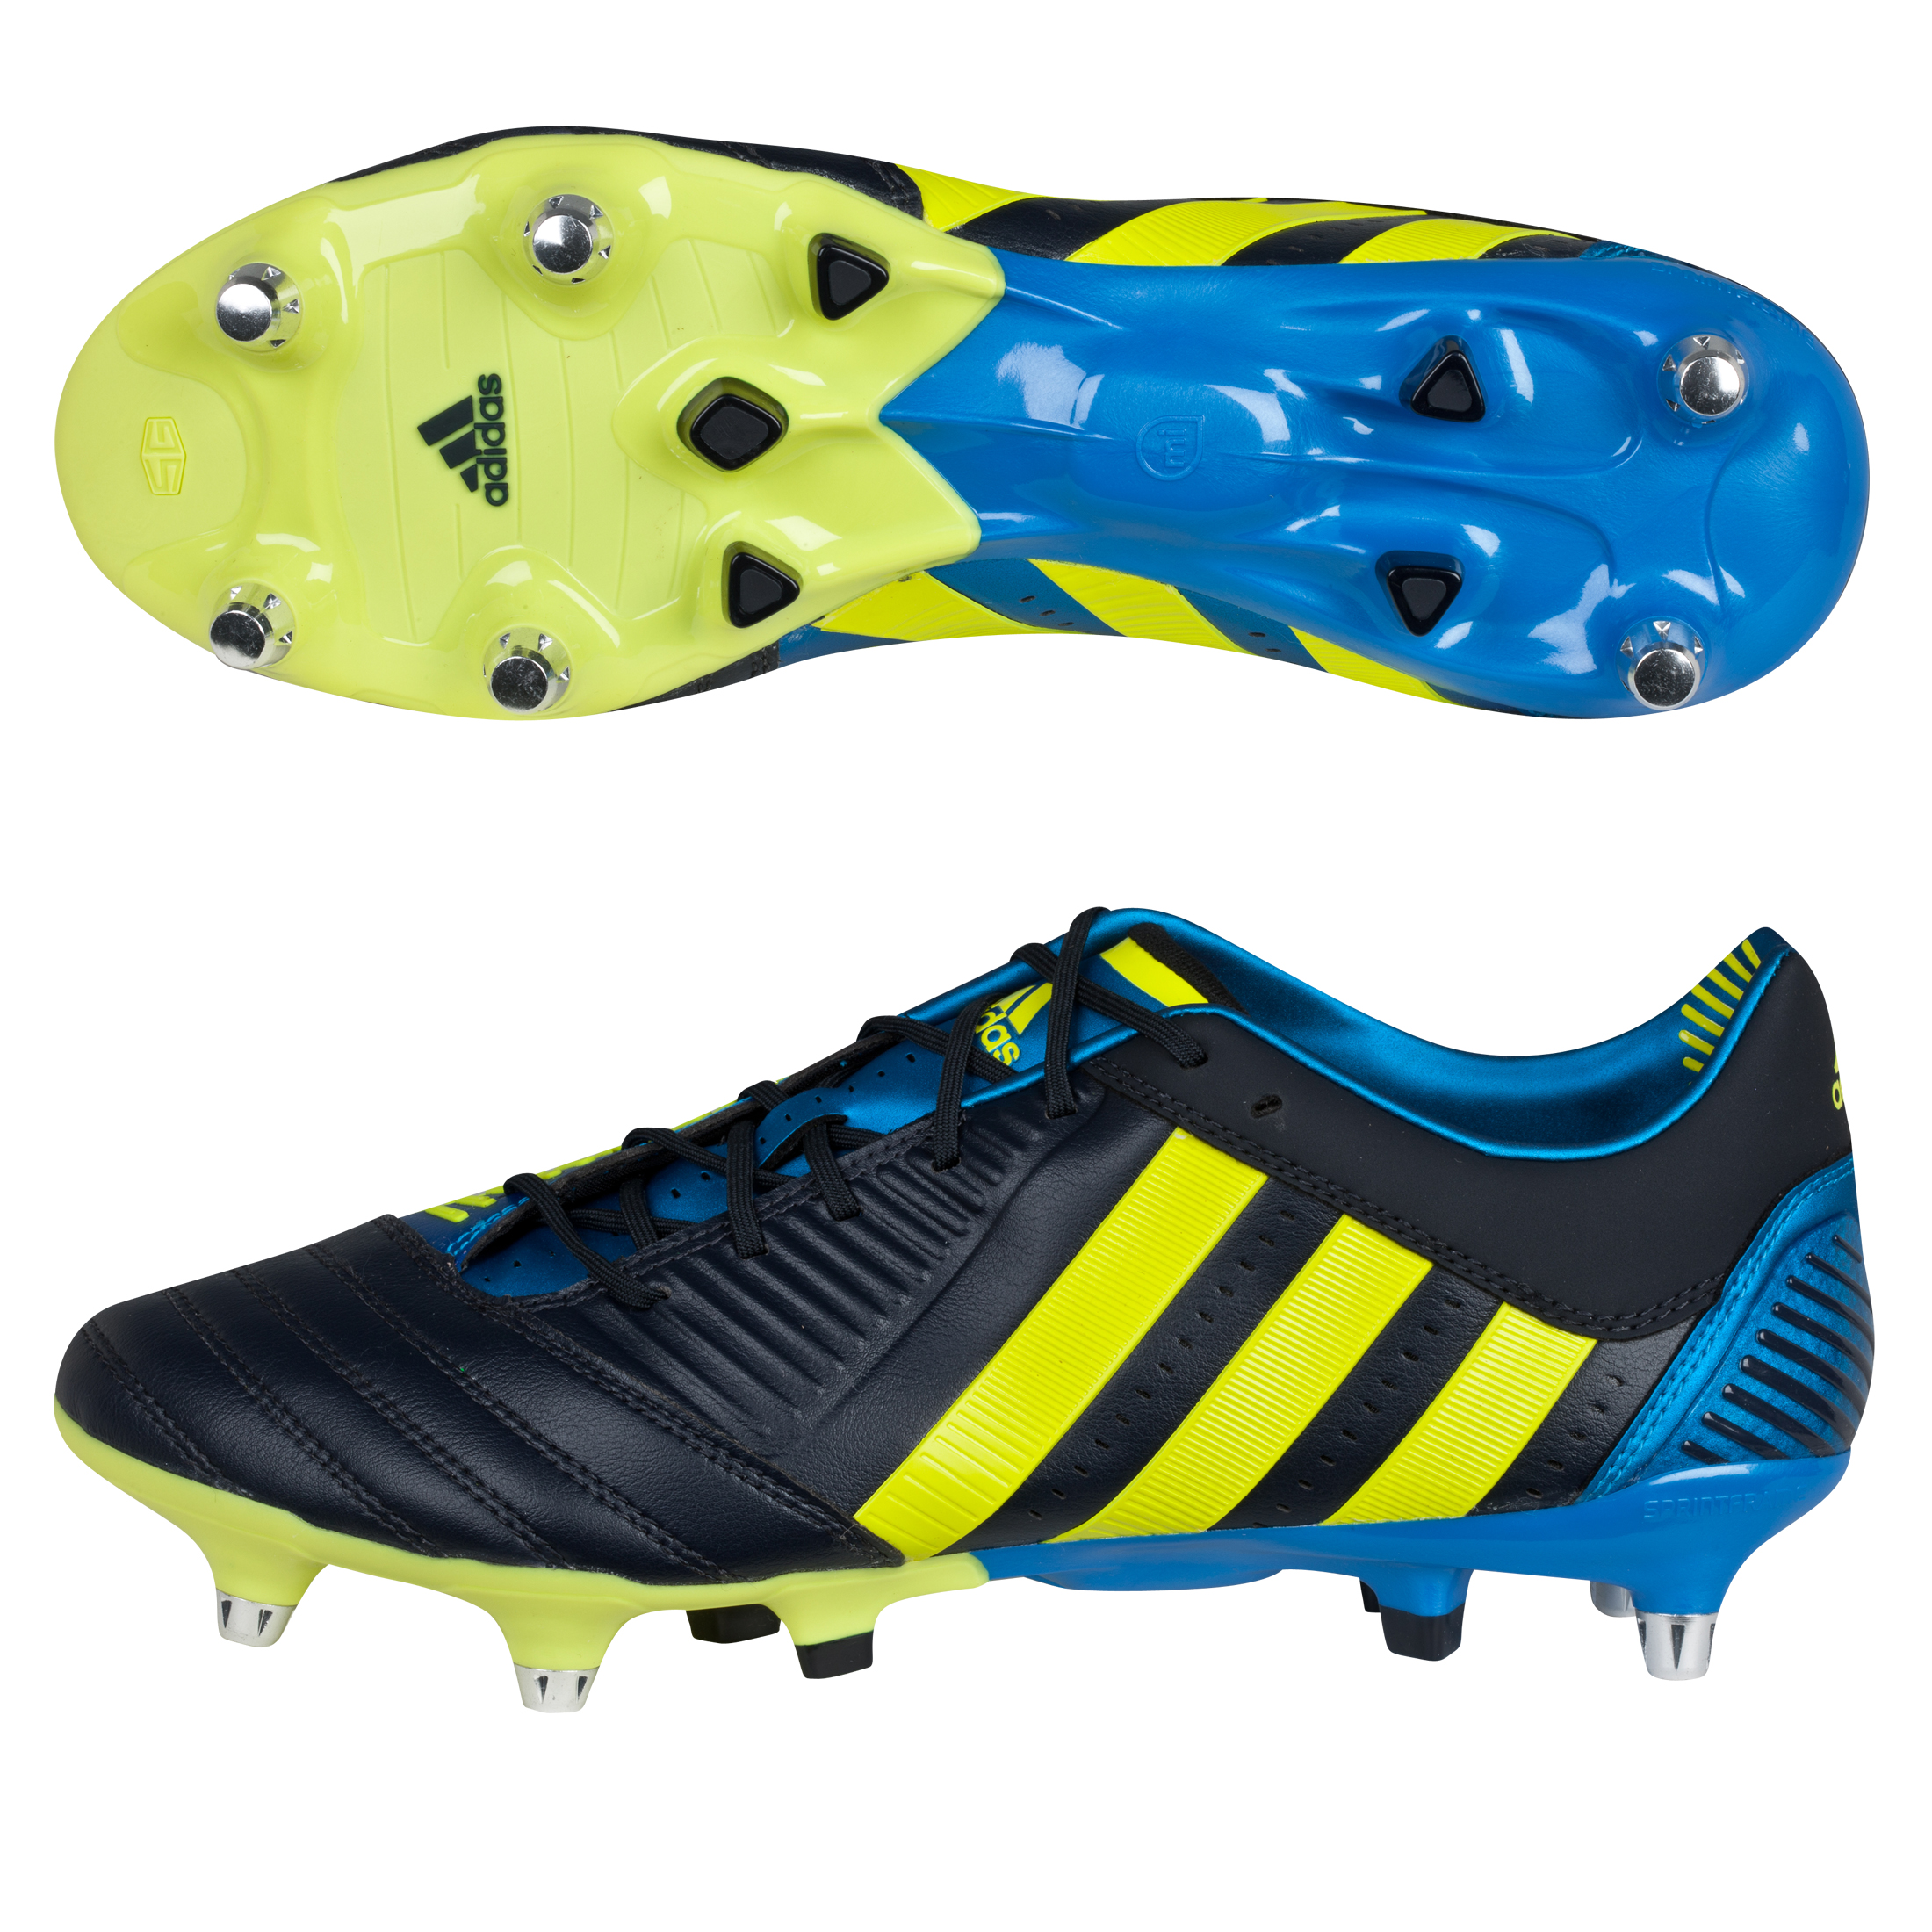 Adidas Predator RXV XTRX Soft Ground Rugby Boots - Punjab/Lab Lime/Bright Blue